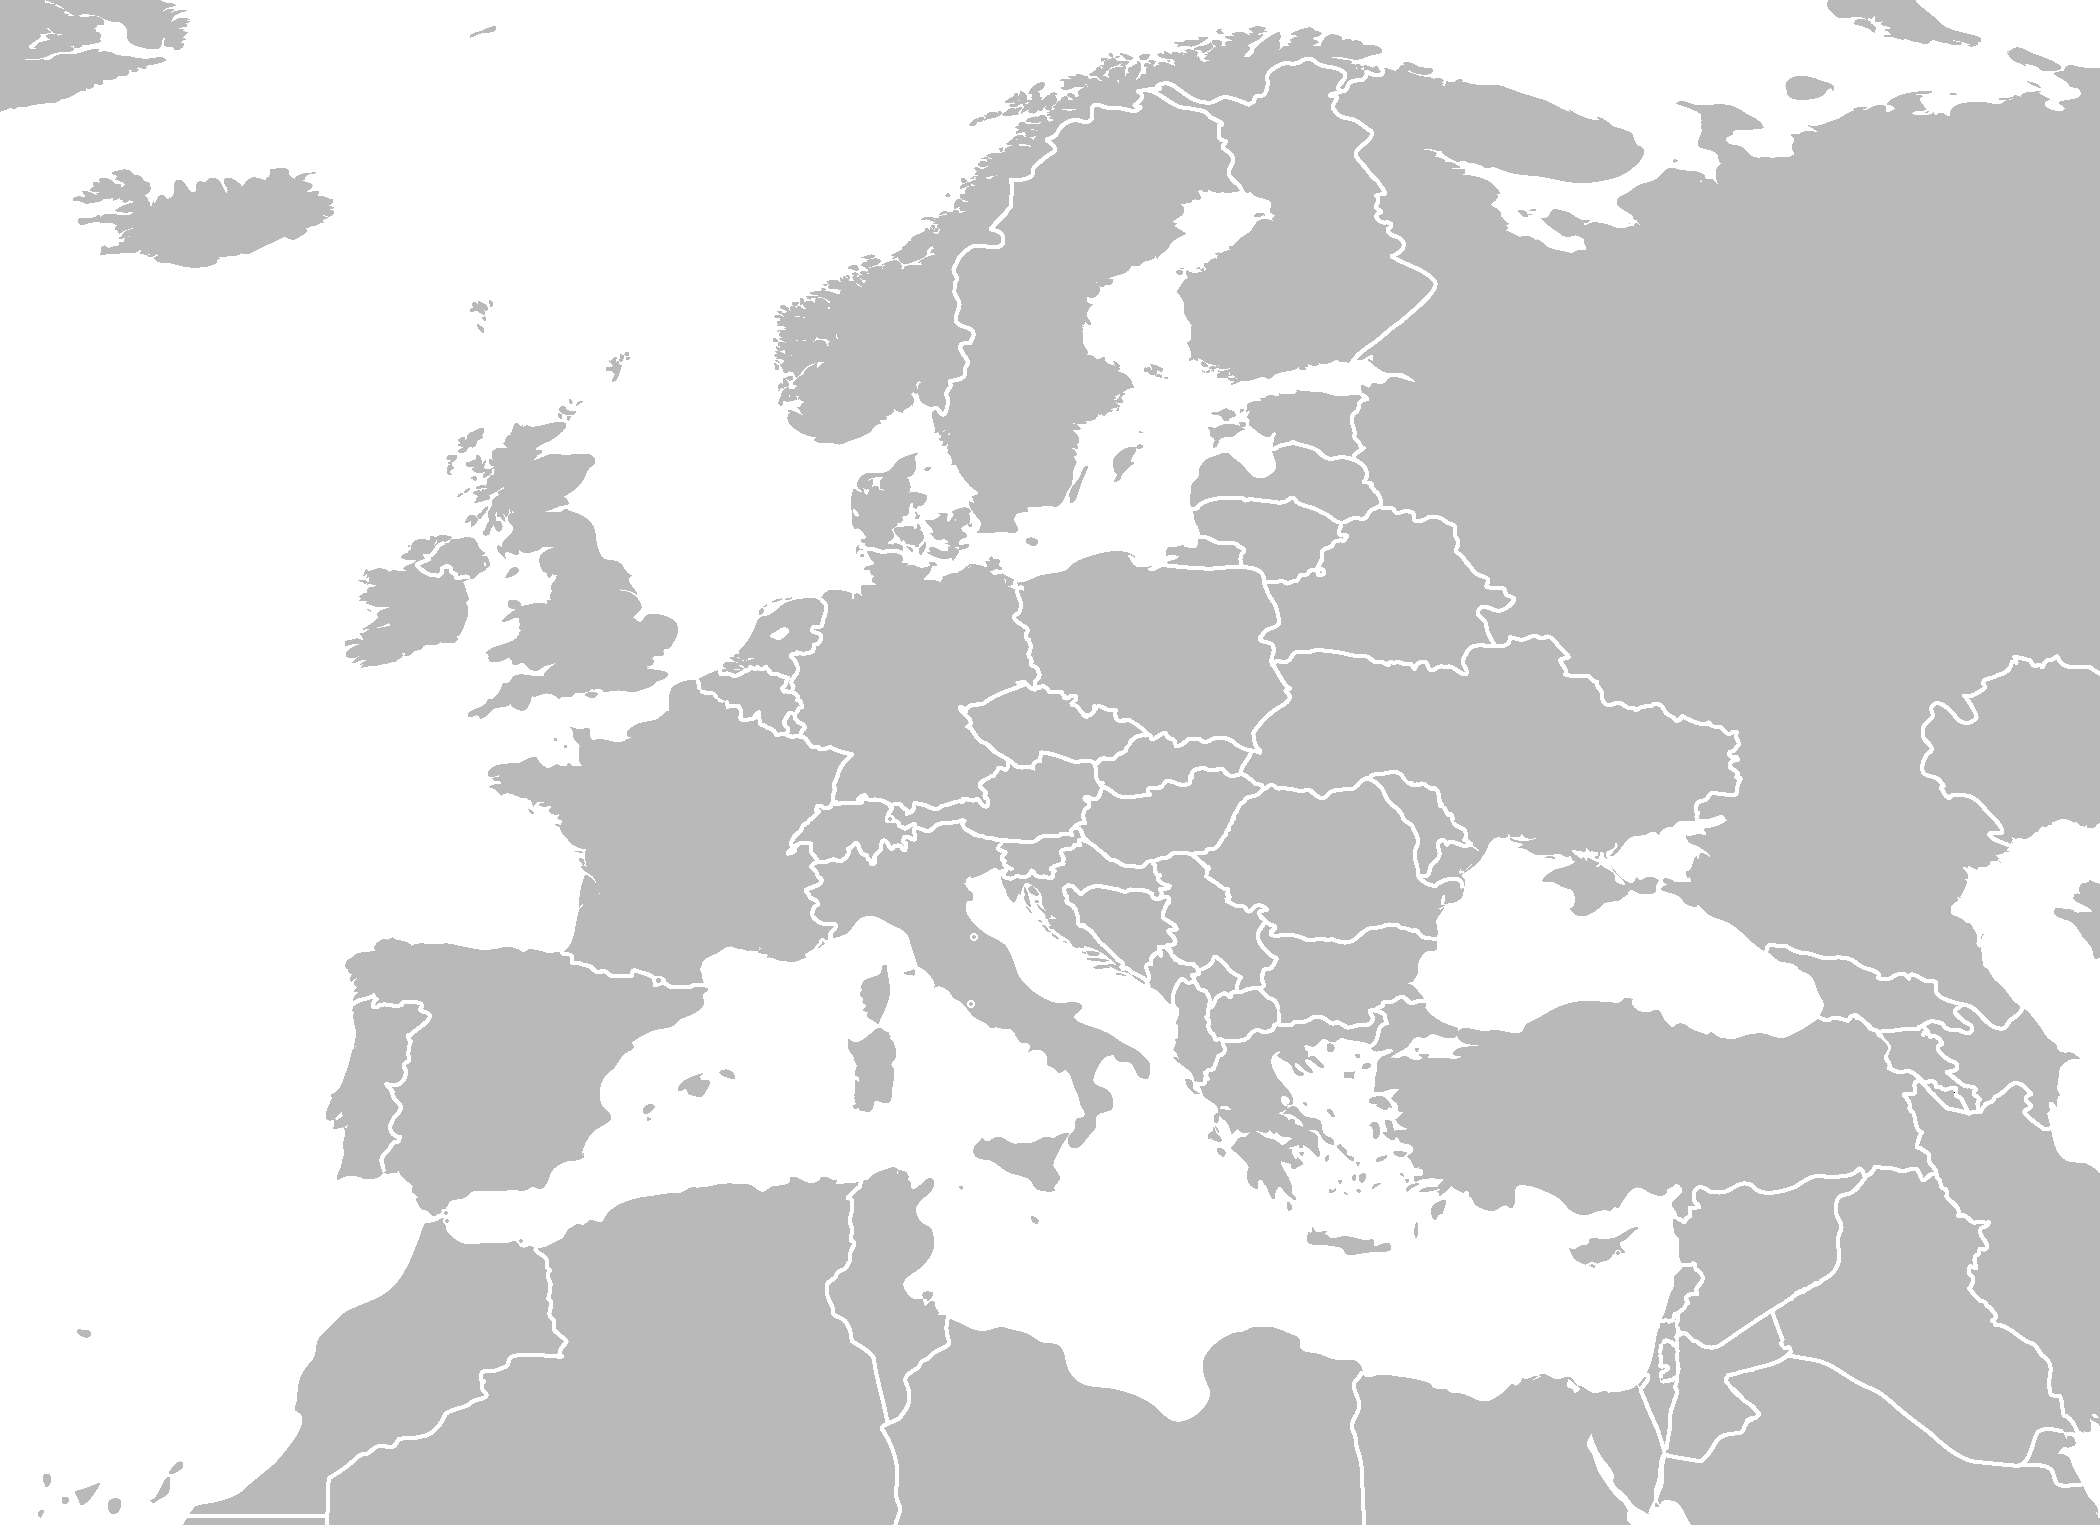 File:BlankMap-Europe-v4.png - Wikimedia Commons